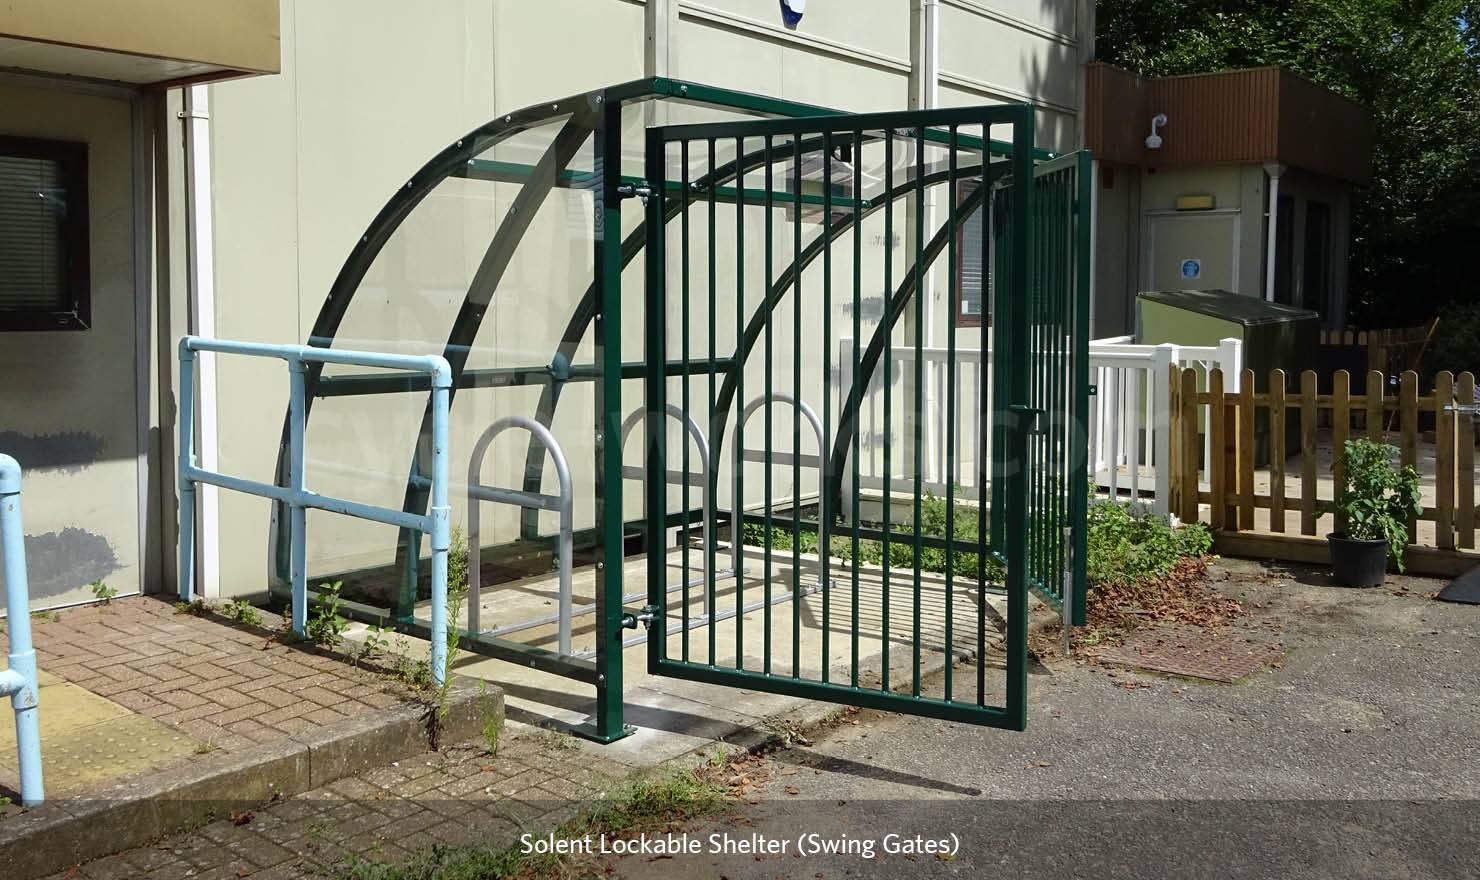 Bike Shelter for Councils